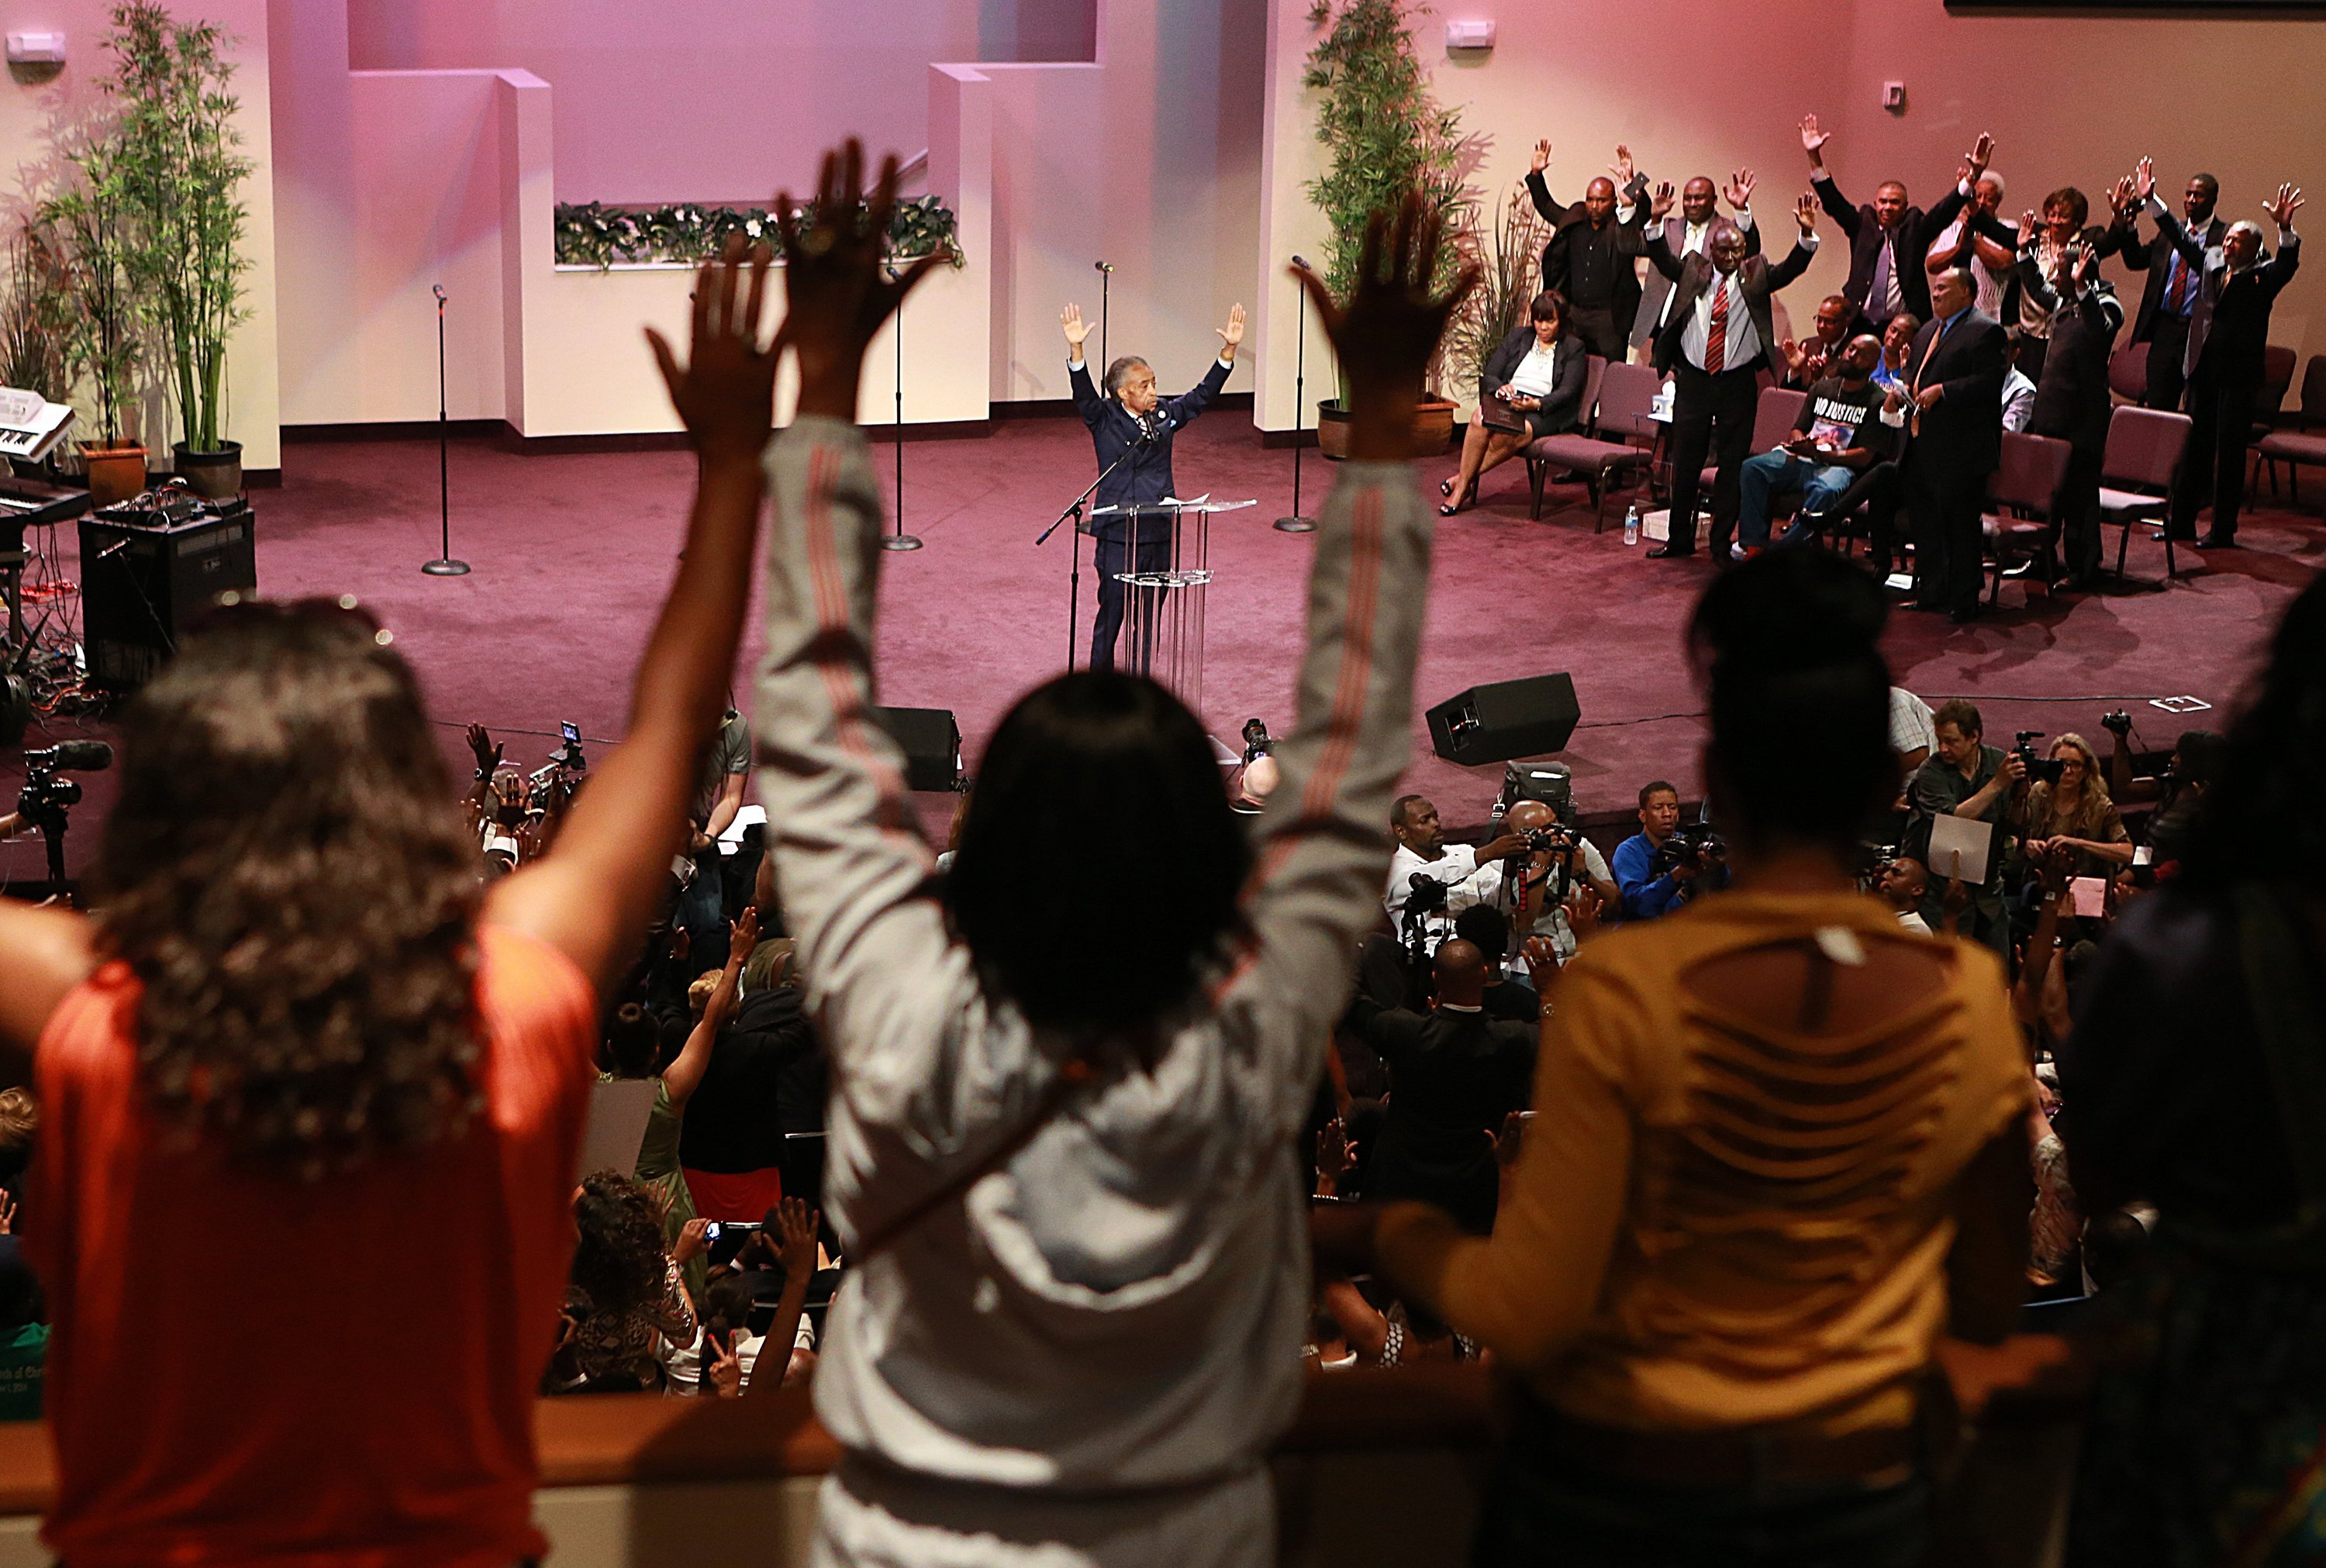 Rev. Al Sharpton speaks at Greater Grace Church in Ferguson, Mo., on Sunday Aug. 17, 2014, during a rally for justice for Michael Brown. (Christian Gooden/St. Louis Post-Dispatch/MCT)